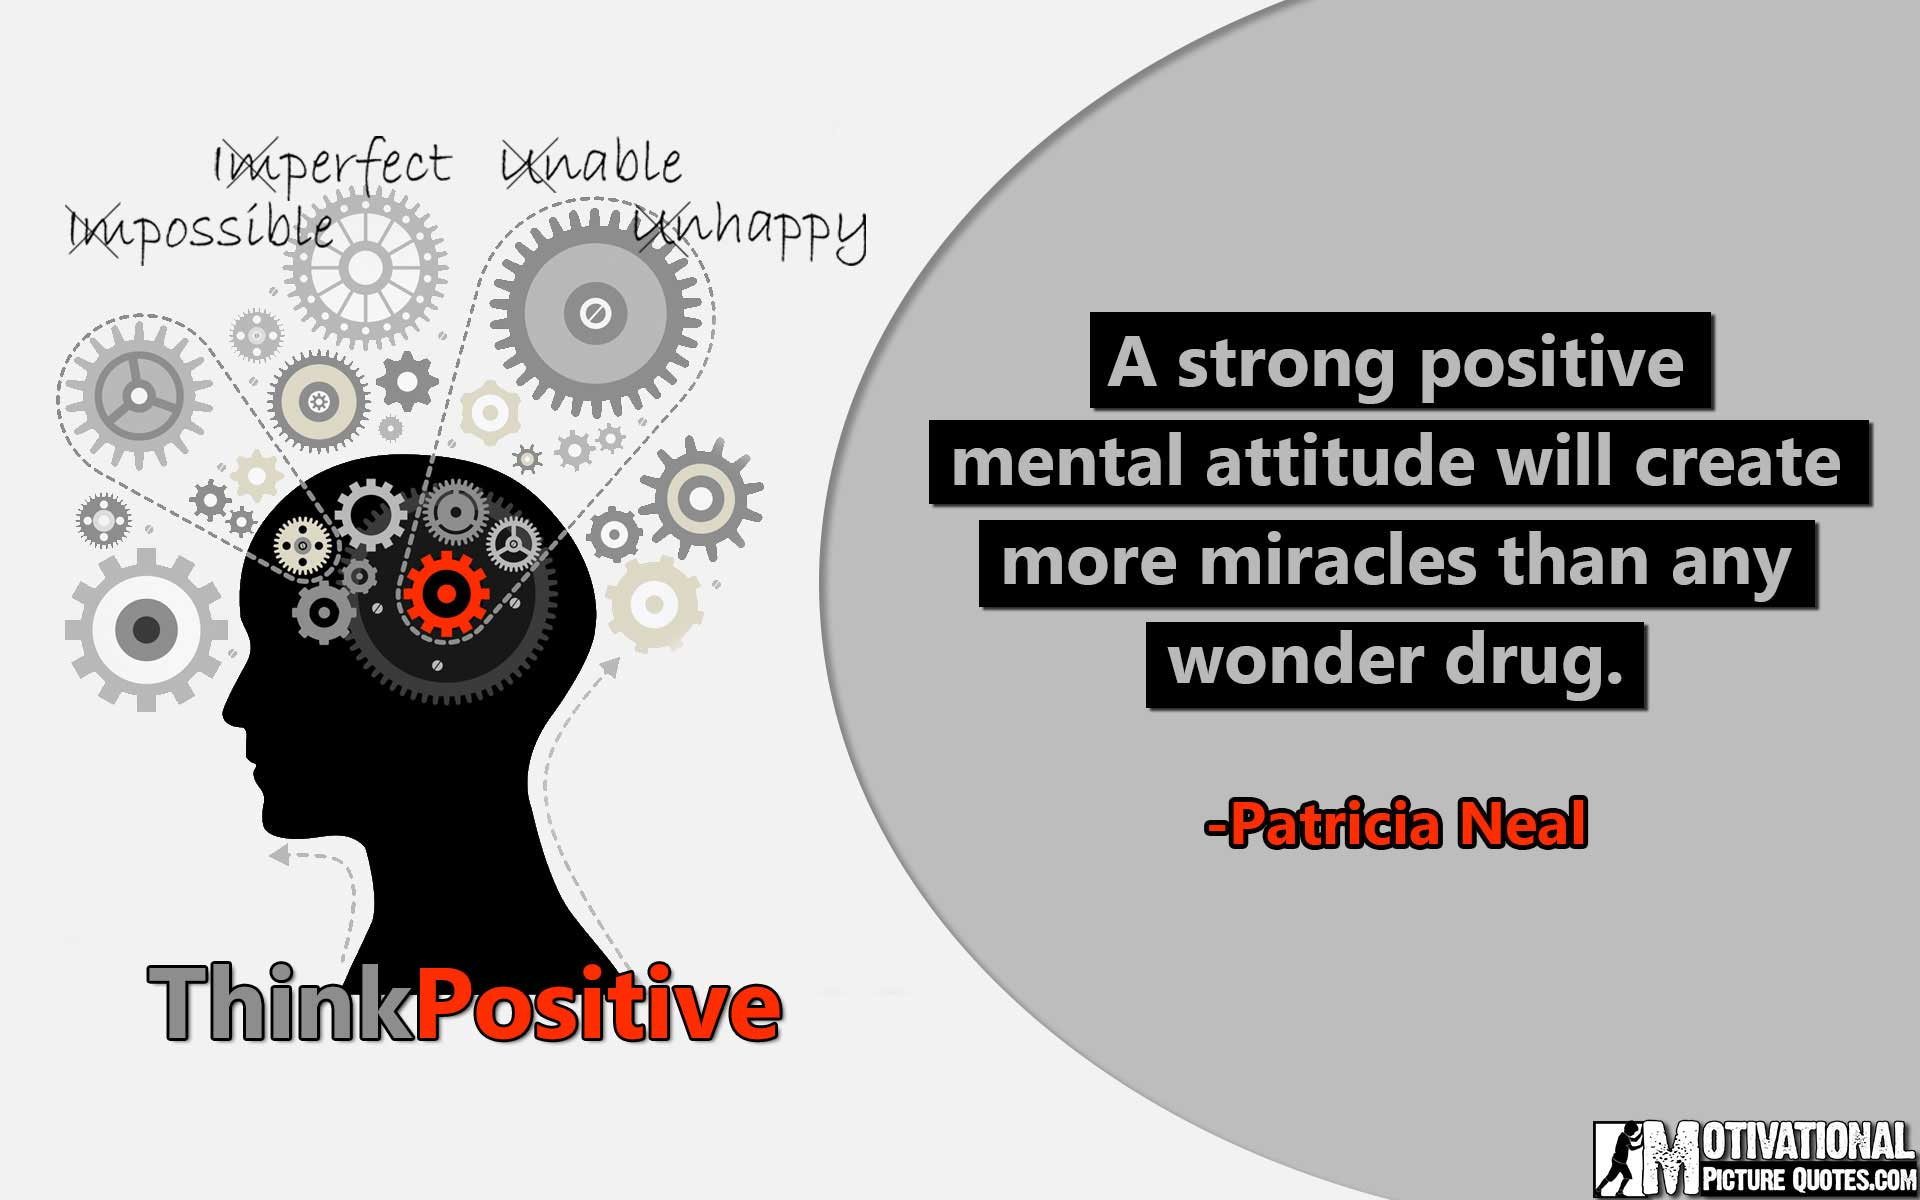 Quotes About Positive Thinking The Power Of Positive Thinking Quotes With Pictures  Insbright